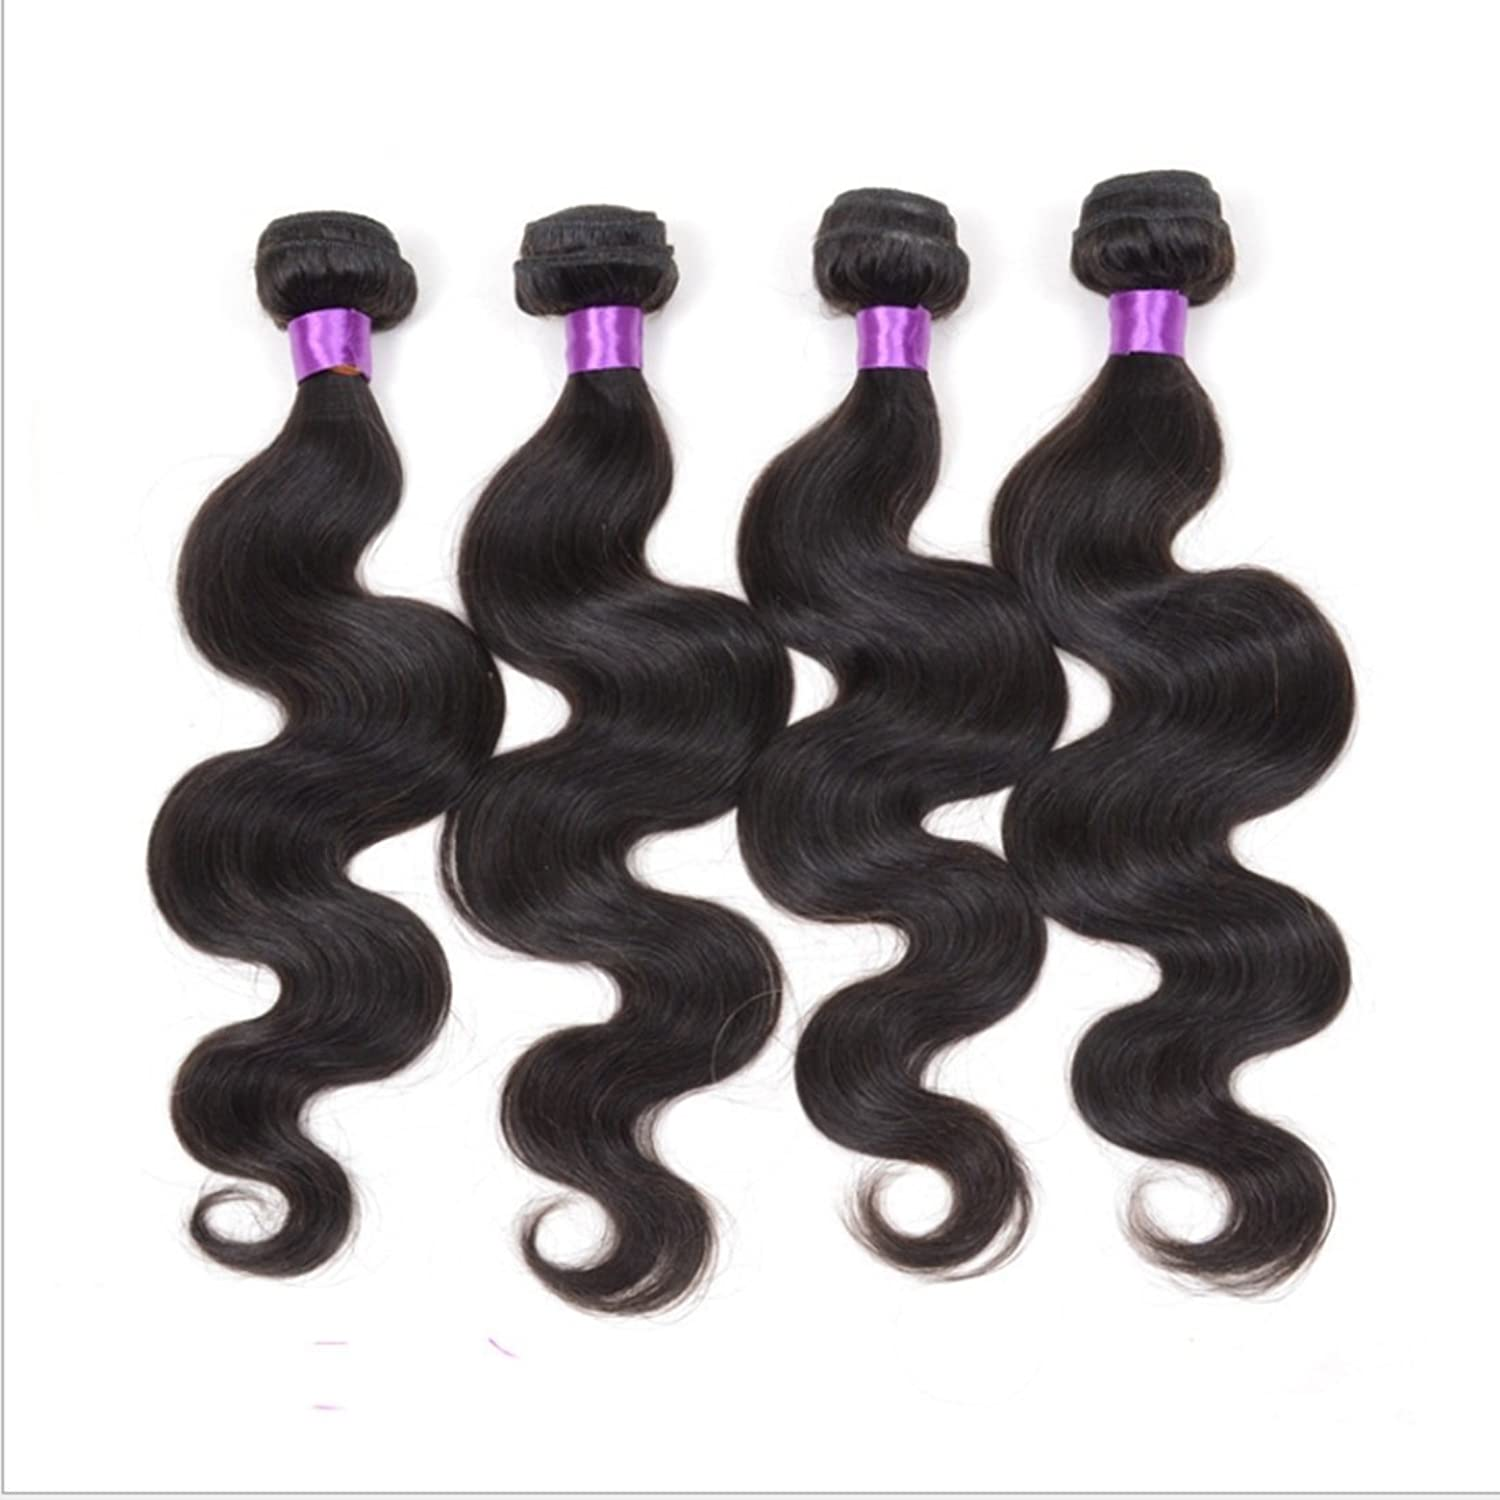 100g Body Wavy Curly Hair Curtain for Brazilian Women Human 100% Really Hair Extension color Natural Black Hot Dyed Curls of Hair Curtain DIY Fun (Size   10 inch)